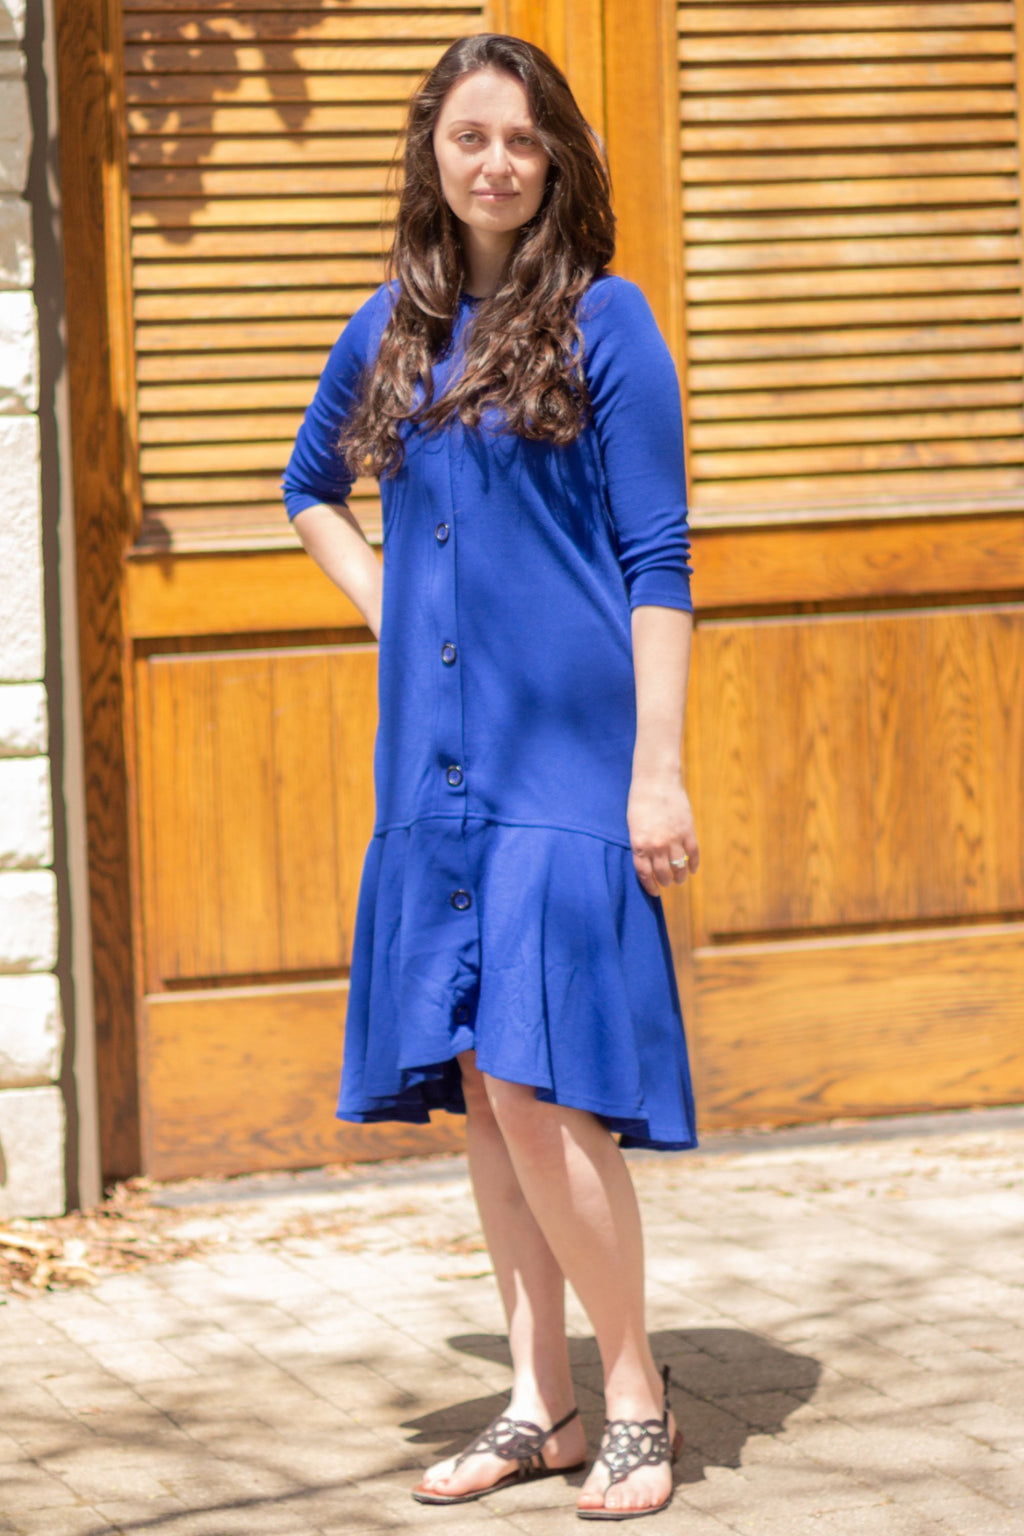 Nursing Dress with Hidden Zippers